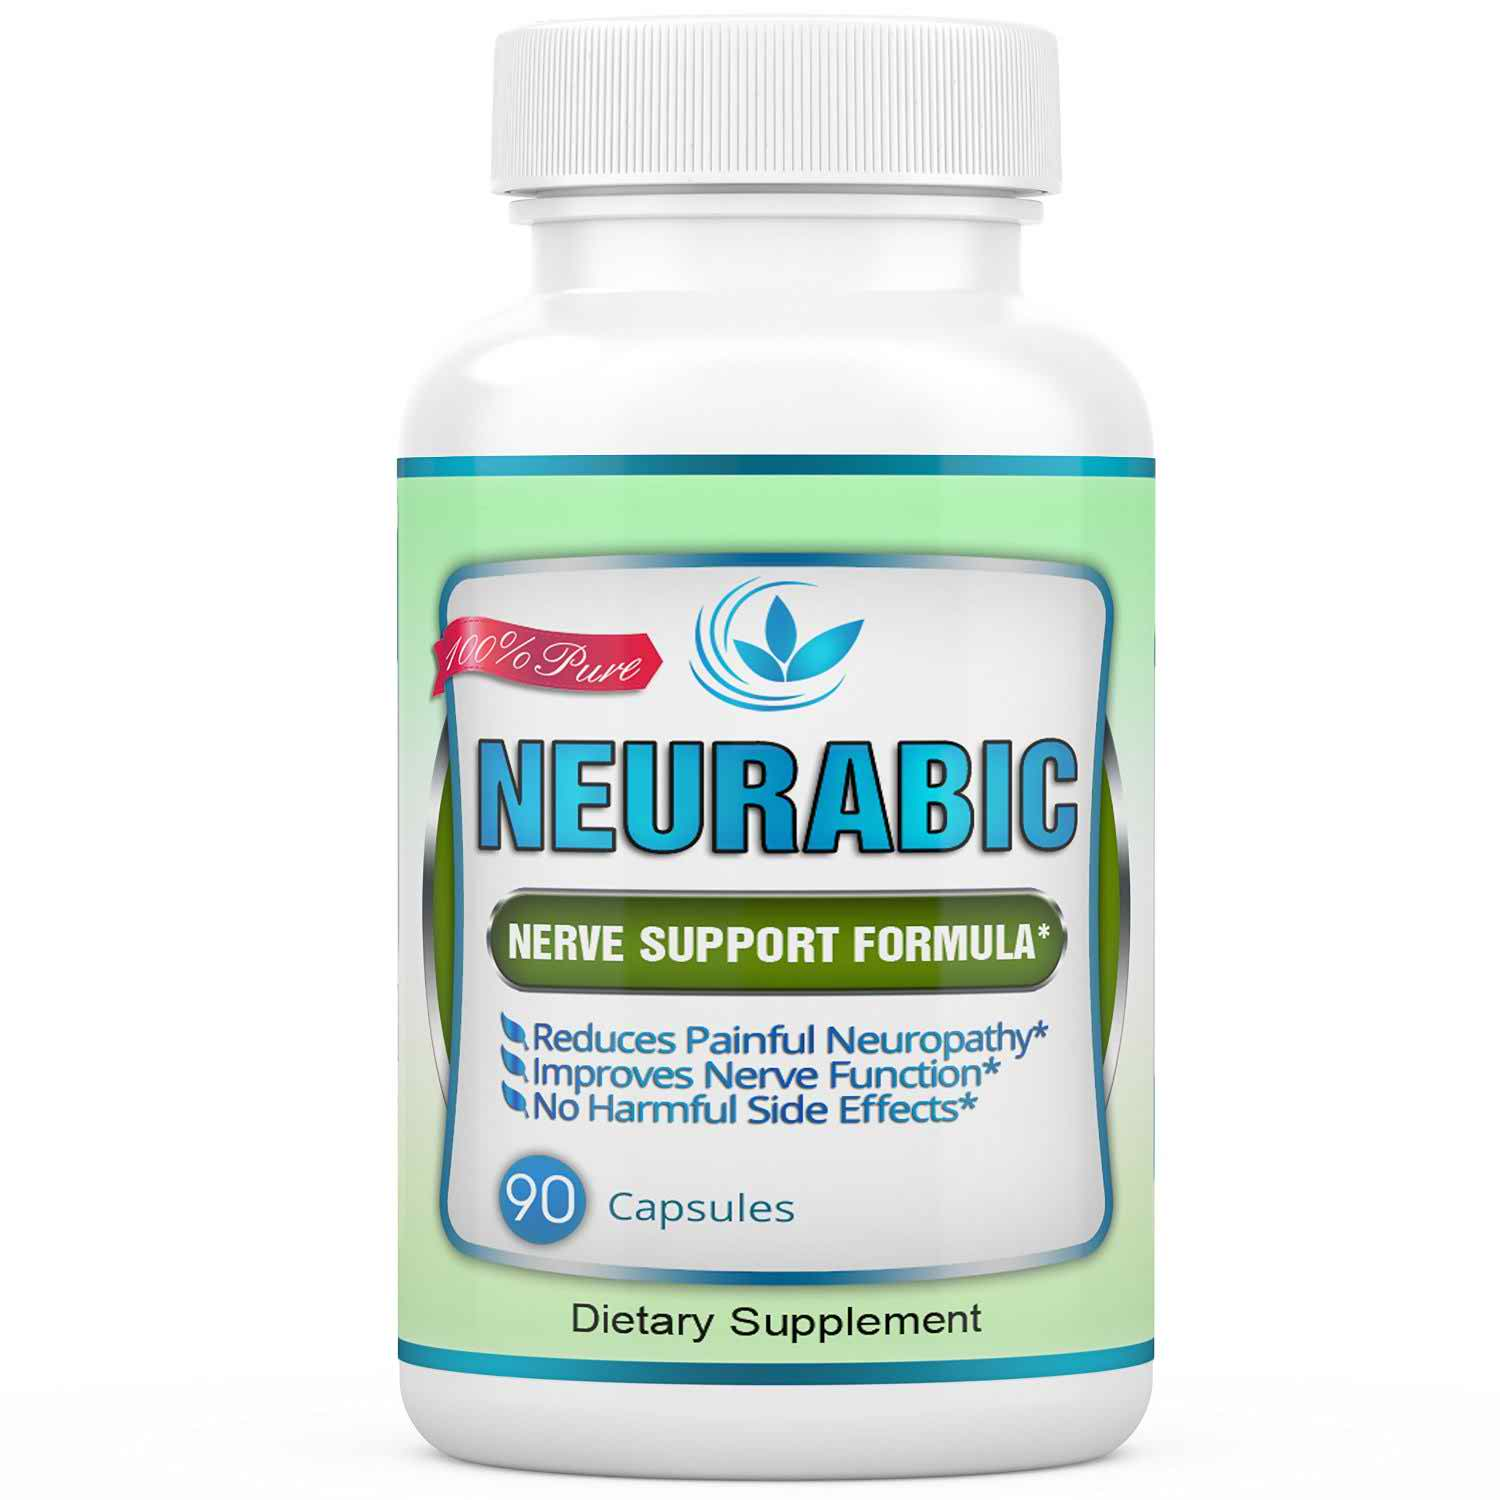 Neuropathy support